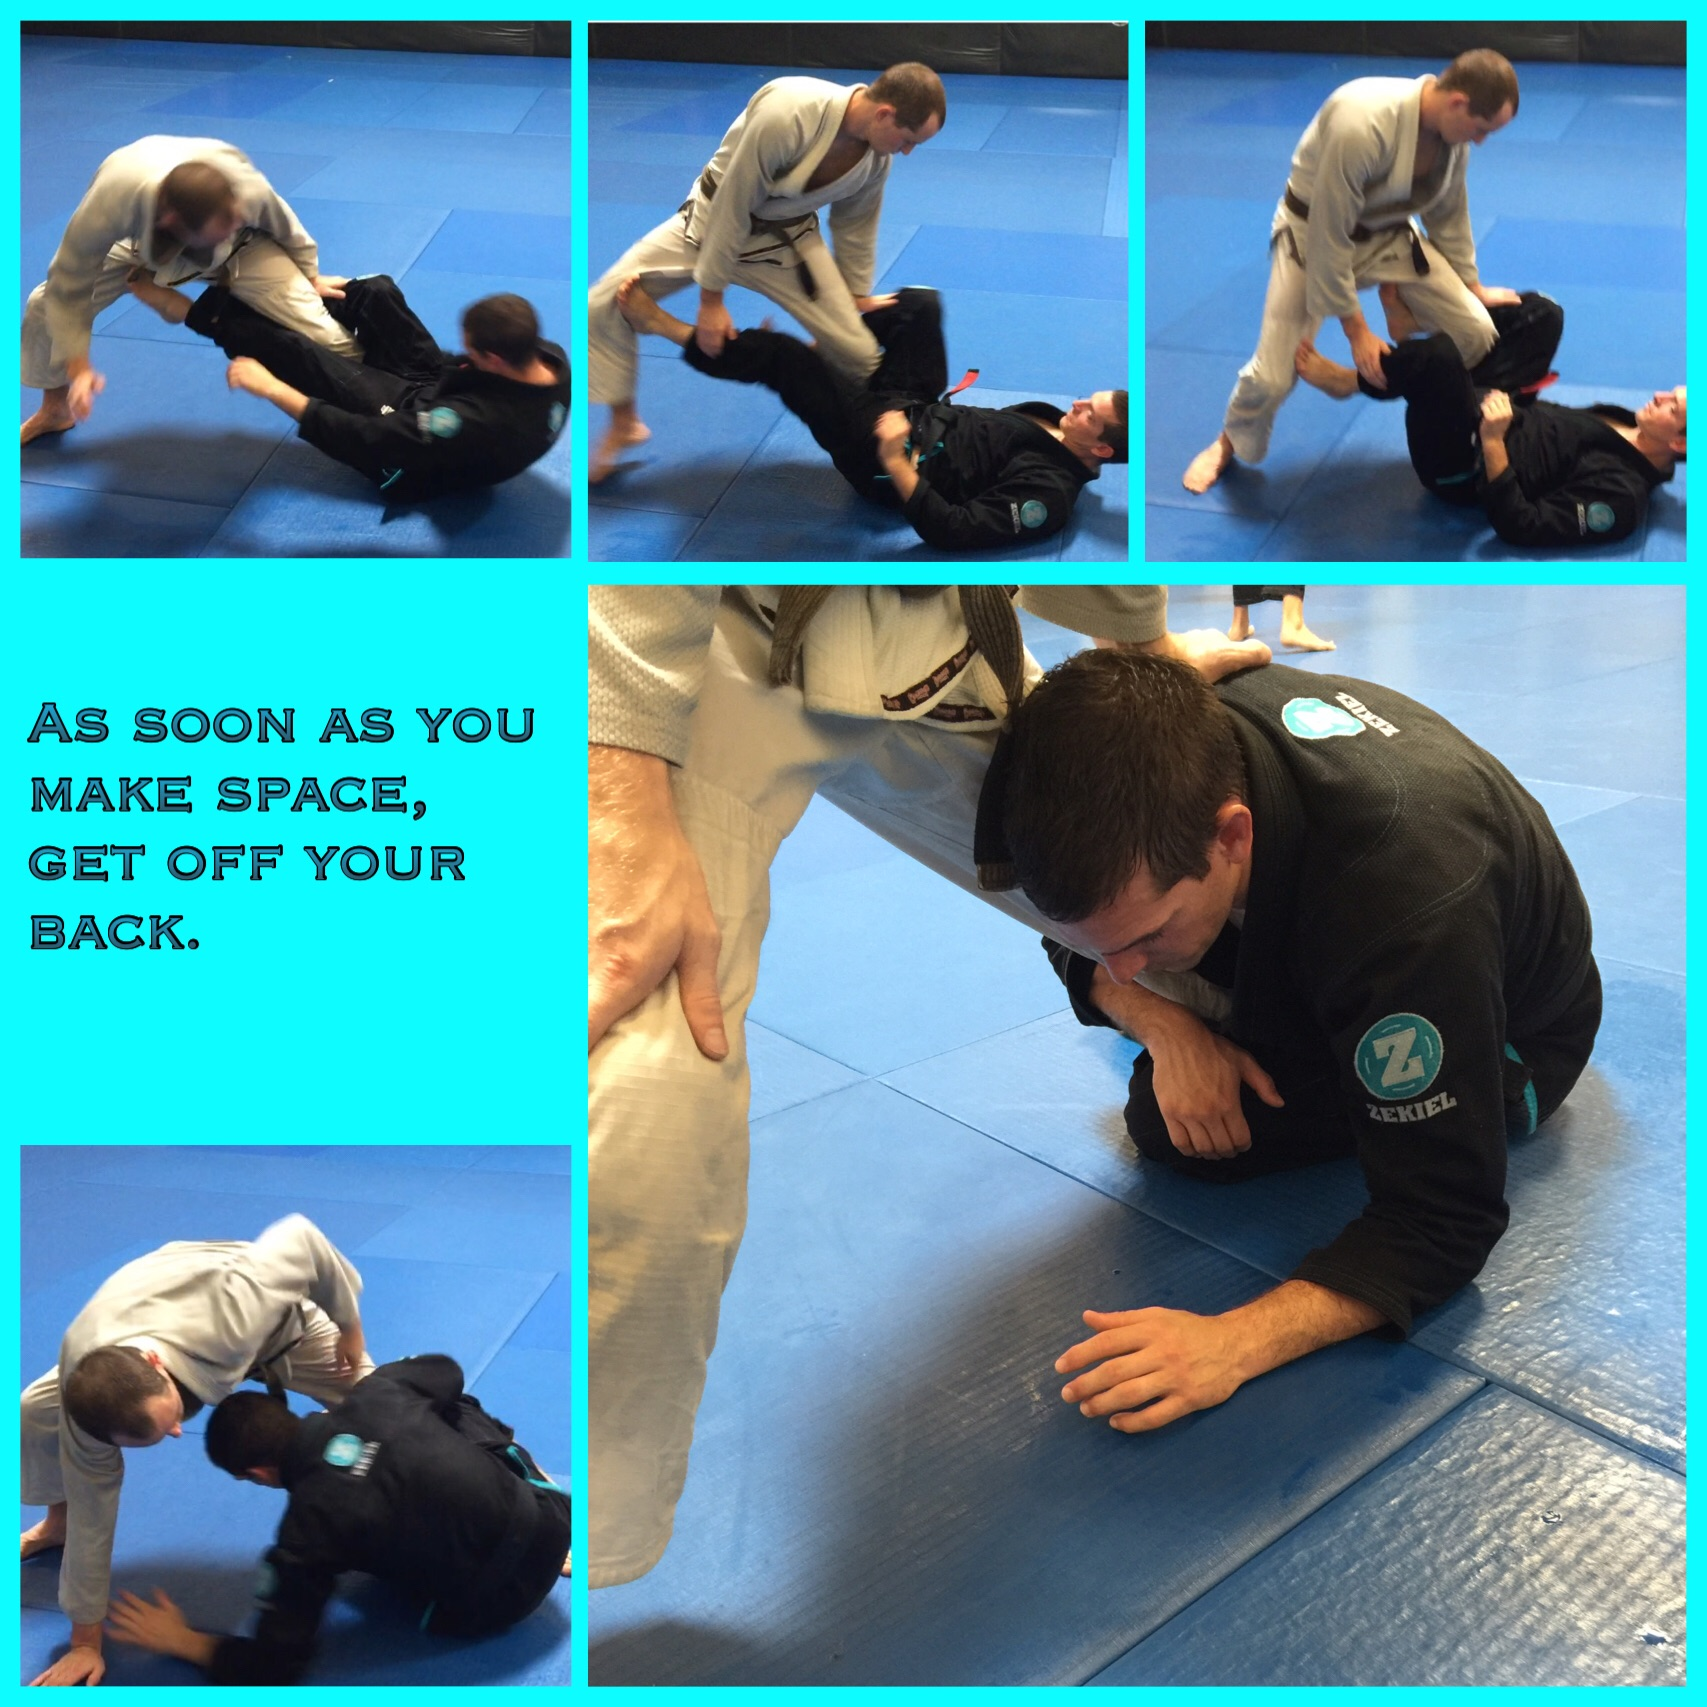 Here is an example of how to get to Koala Guard from De Lariva Guard. As Ben pushes down on Ian's leg the transition begins.